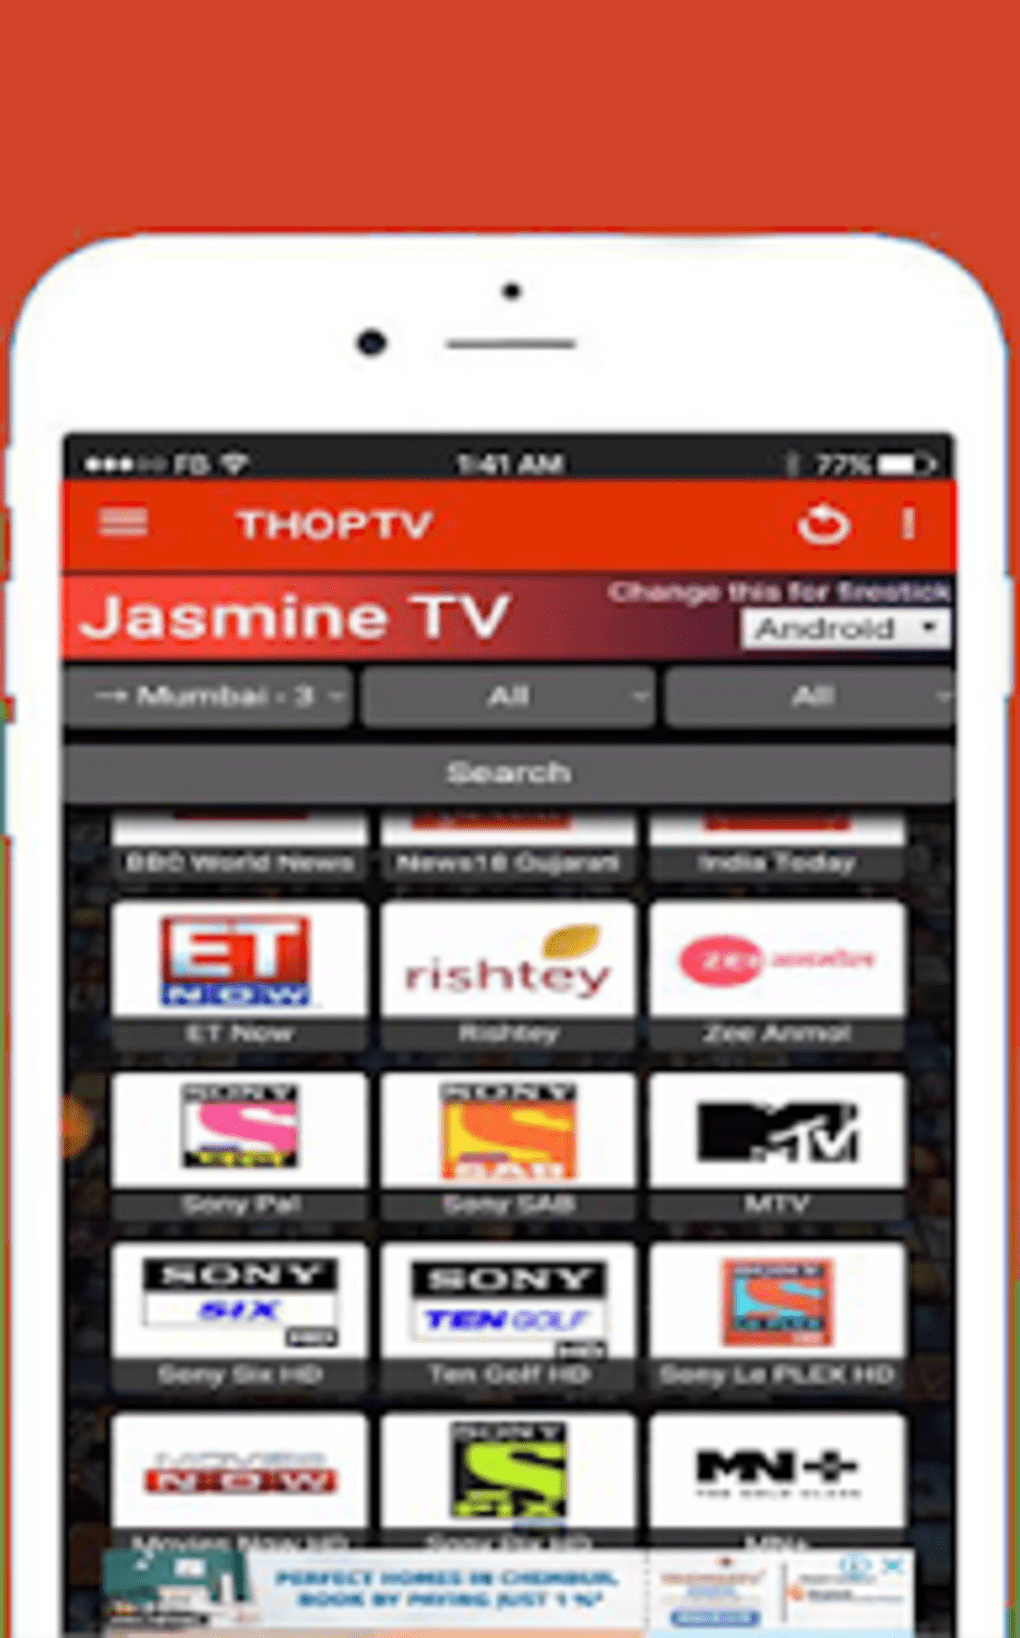 THOPTV for Android - Download